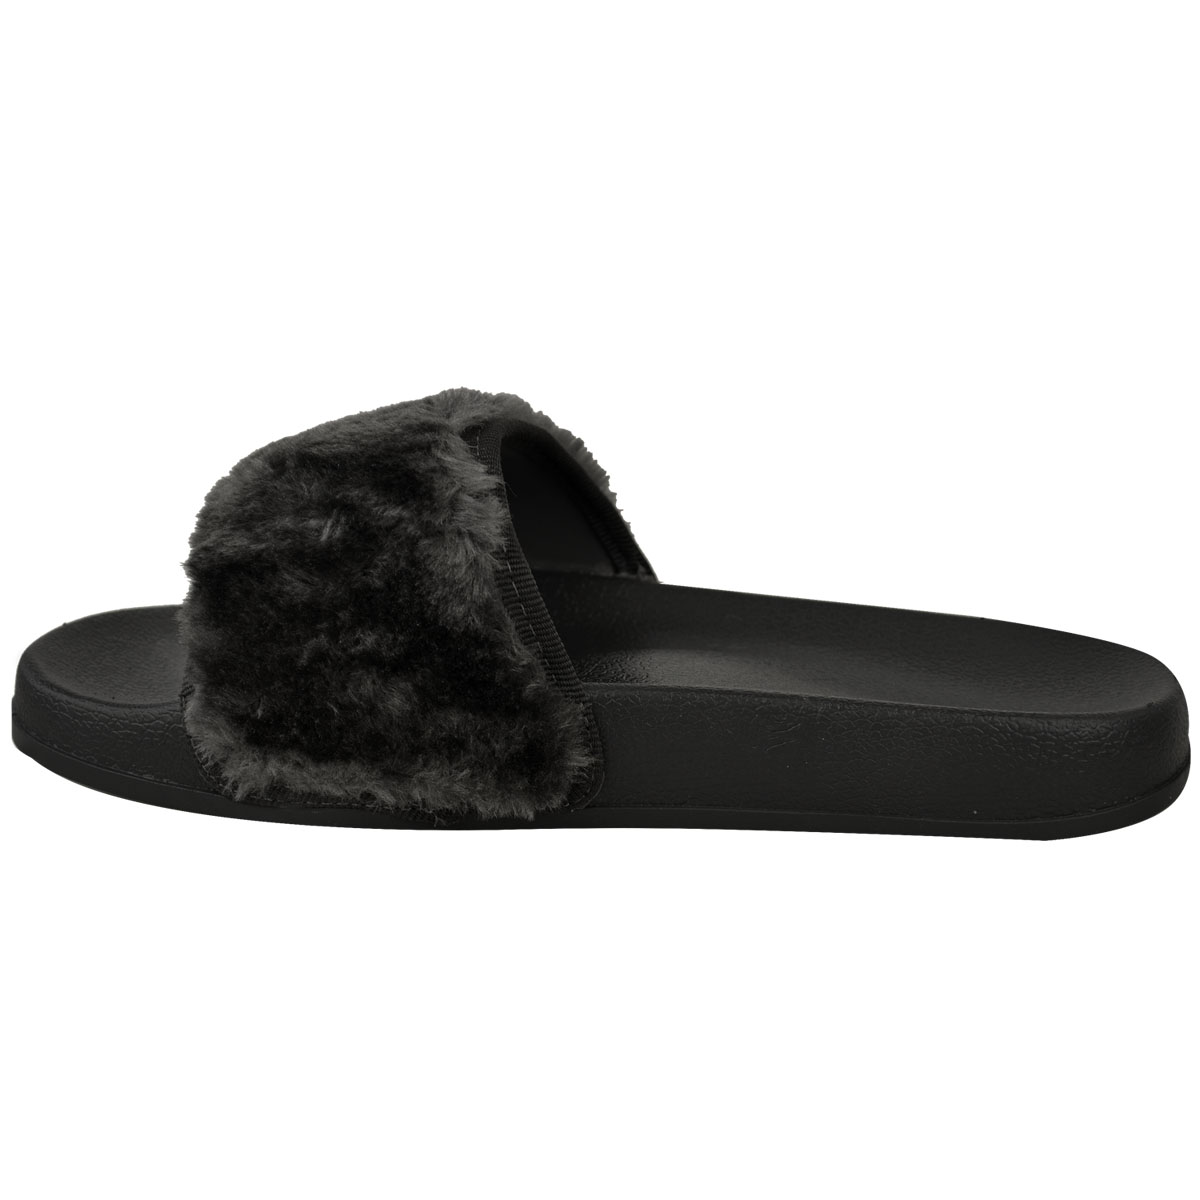 Free shipping on women's flats at getson.ga Shop ballet flats, loafer flats, mule flats and black flats from the best brands including Tory Burch, TOMS, .